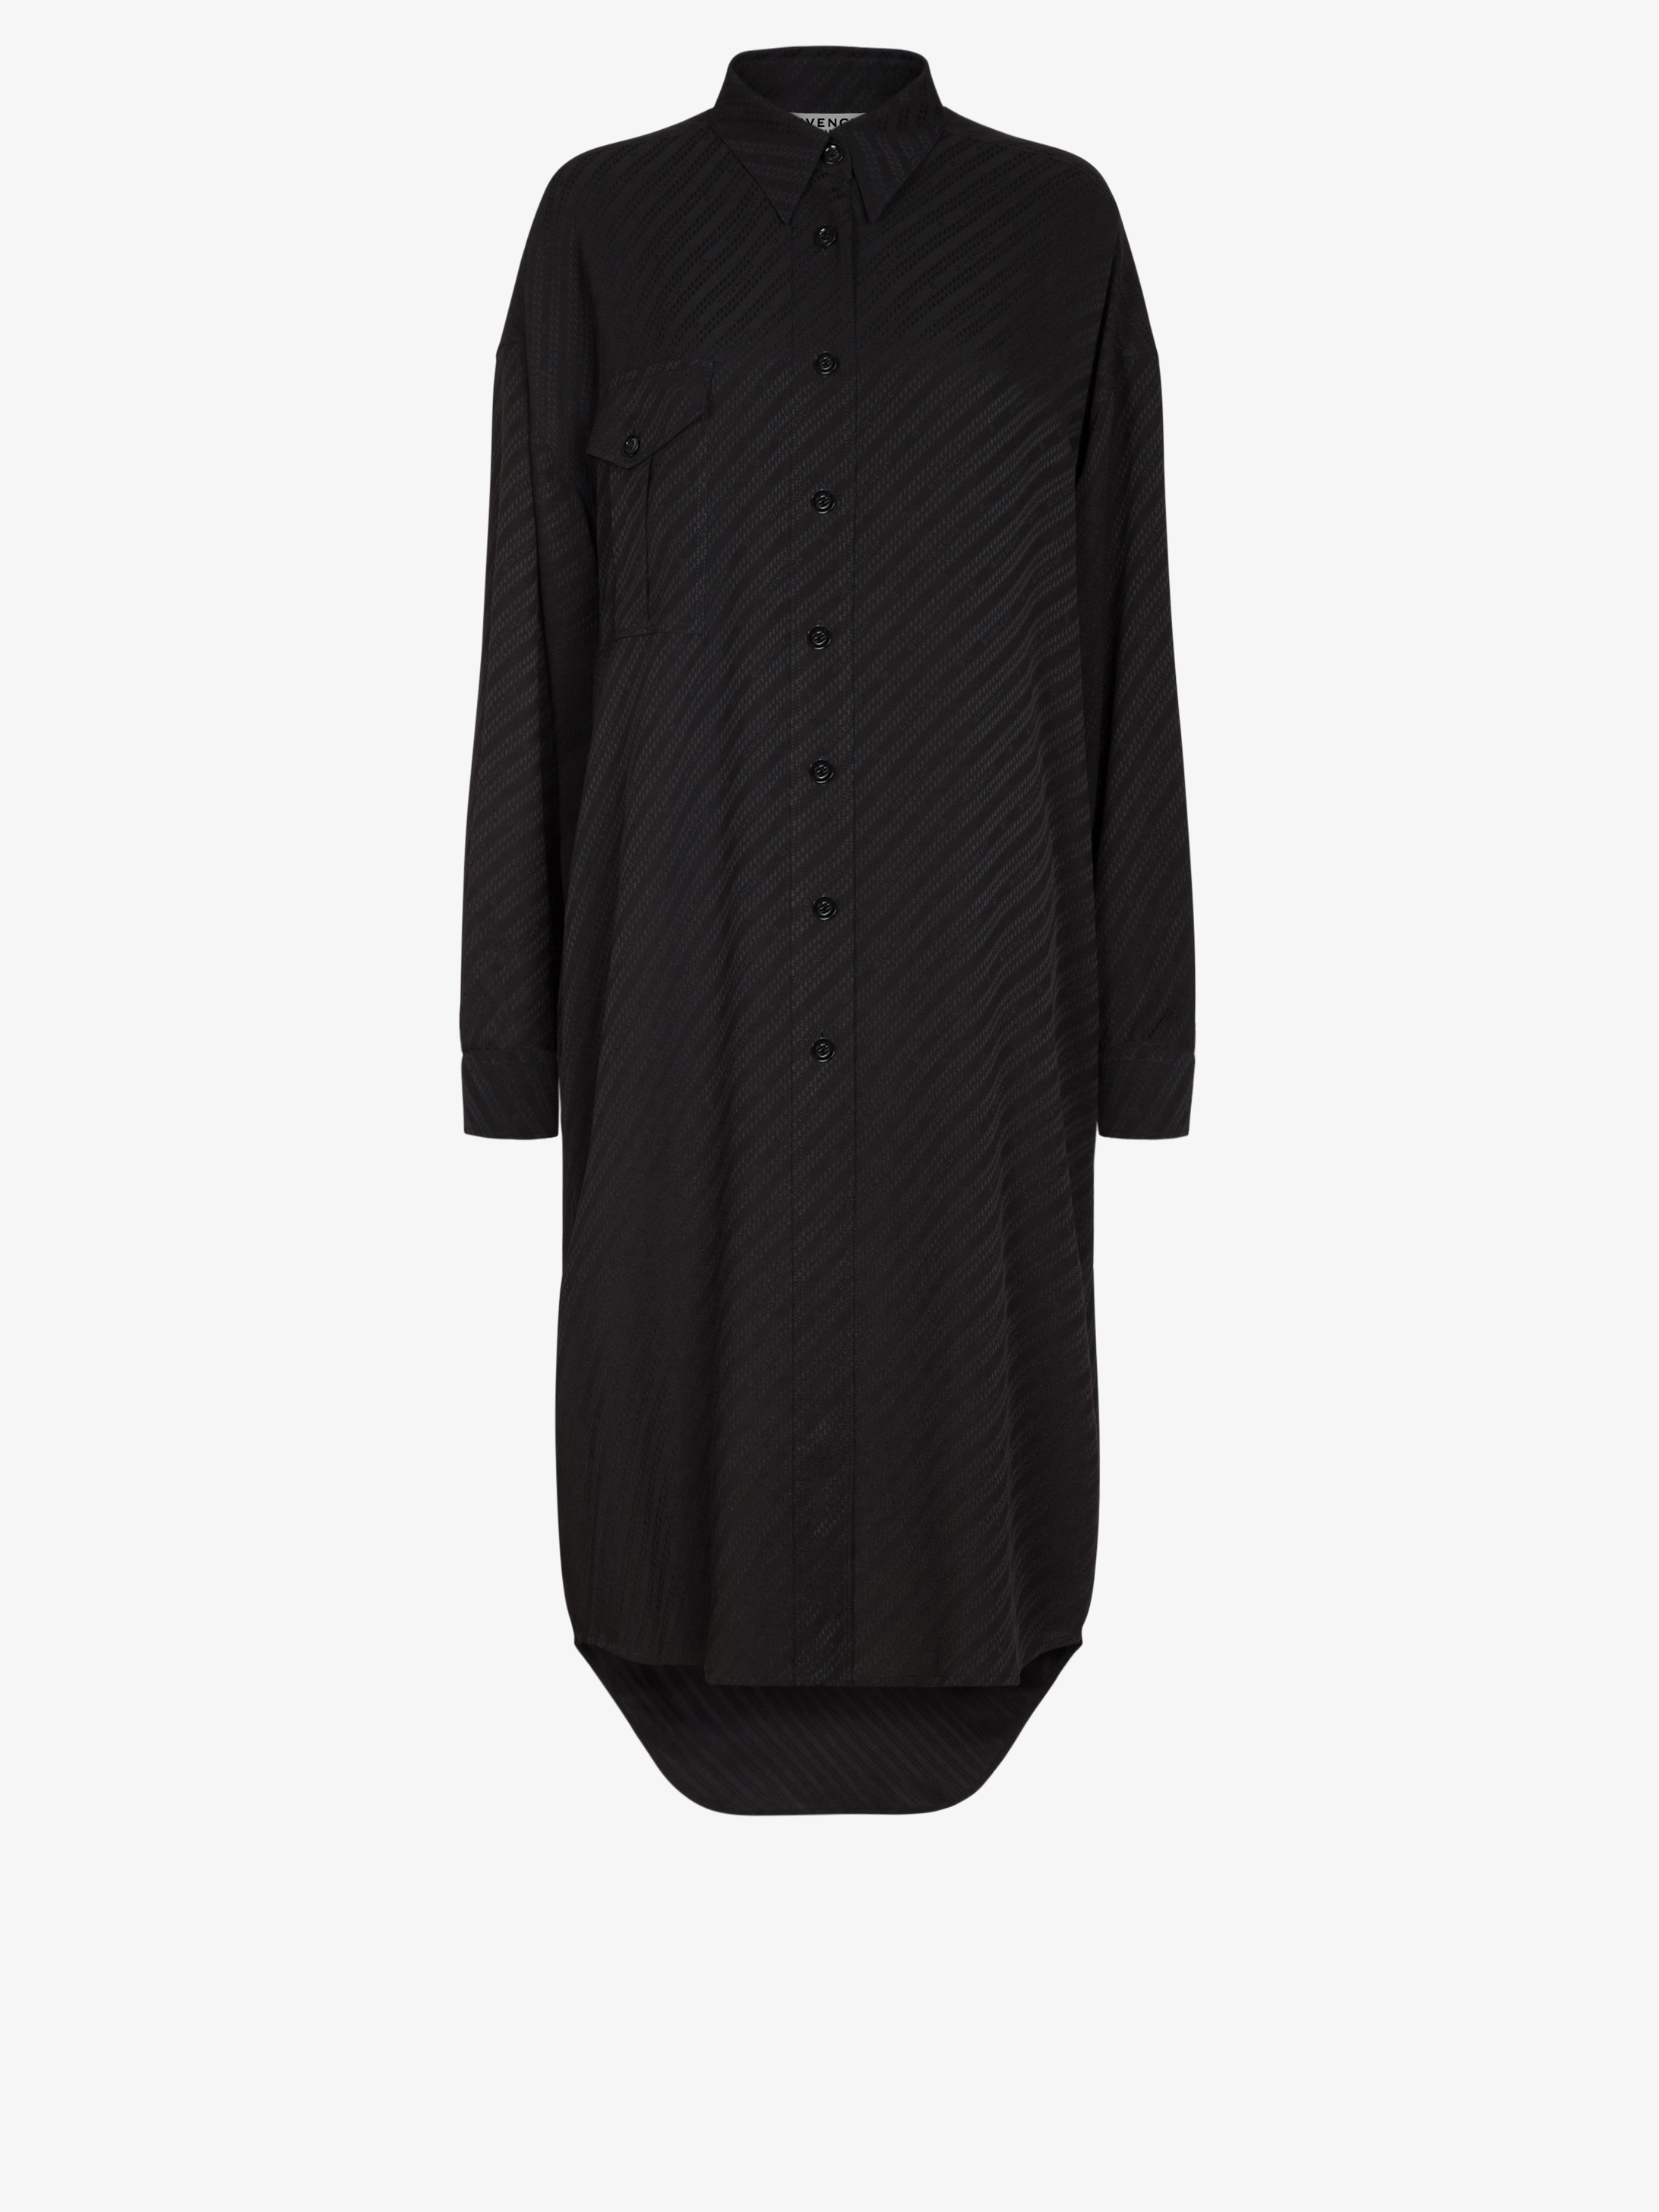 GIVENCHY Chain oversized shirt dress in jacquard